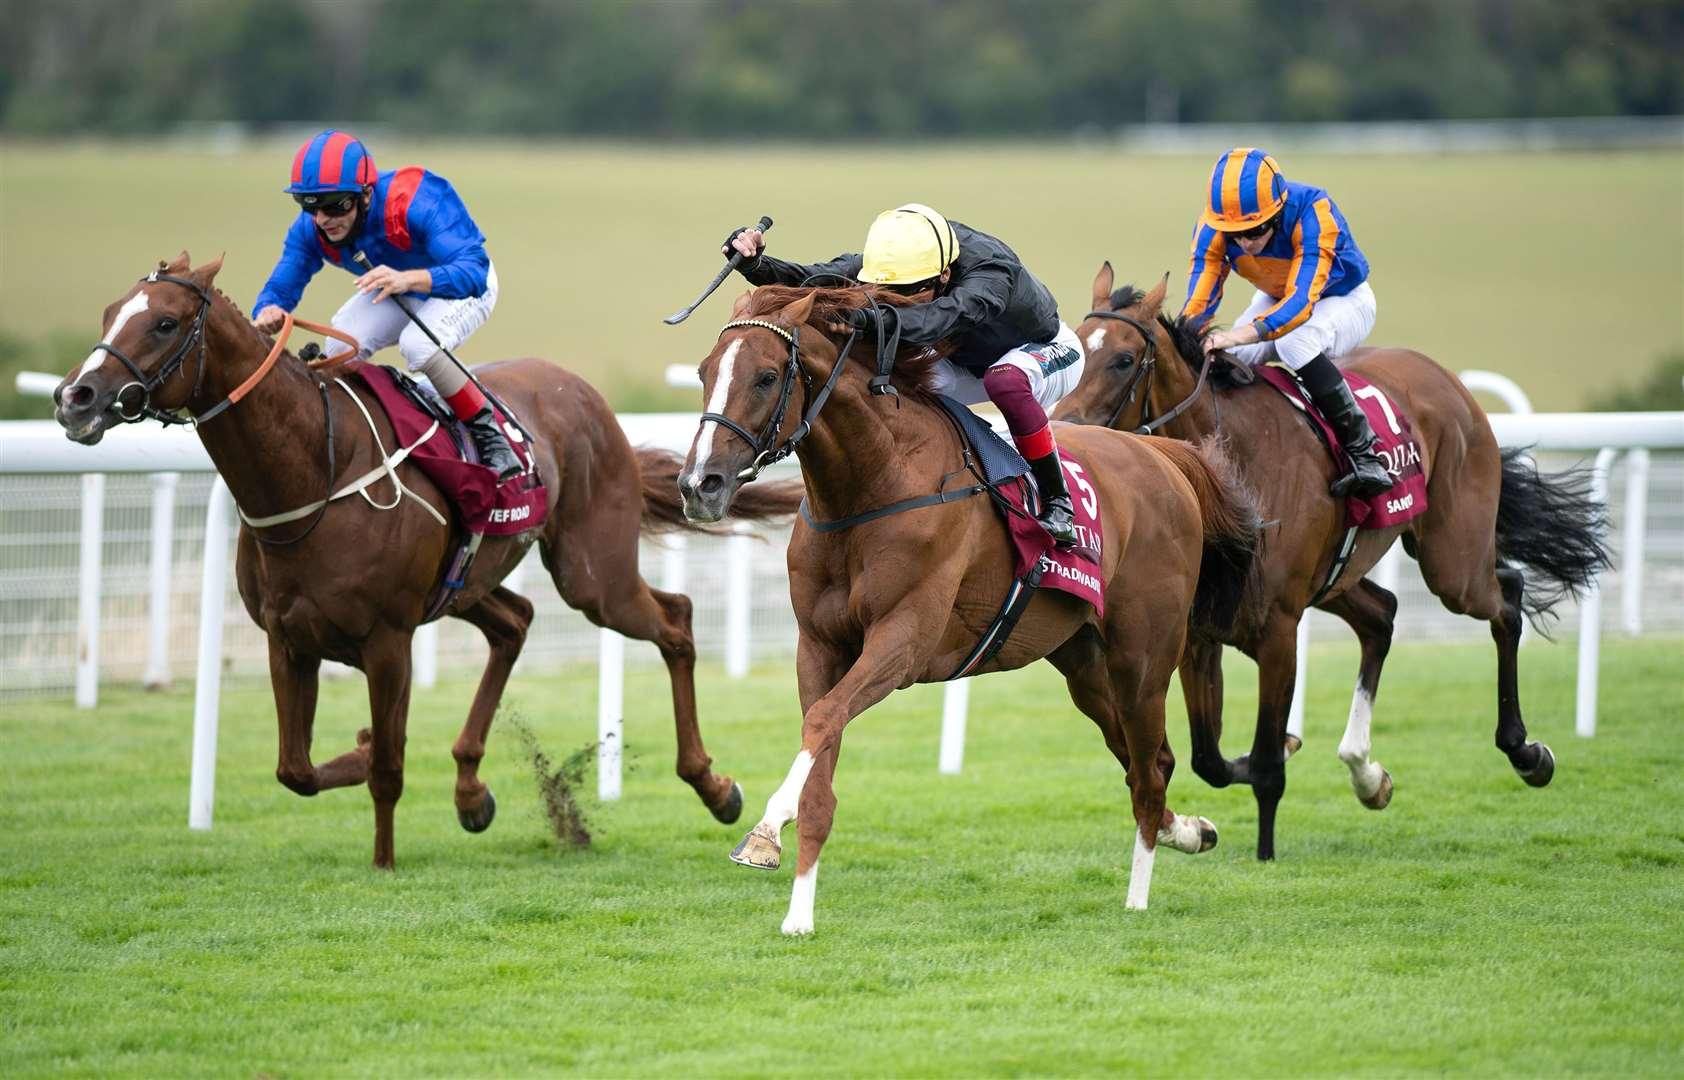 Stradivarius ( Frankie Dettori,centre) wins the Al Shaqab Goodwood Cup from Nayef Road (left) and Santiago.Glorious Goodwood28.7.20 Pic: Edward Whitaker/ Racing Post. (39383779)